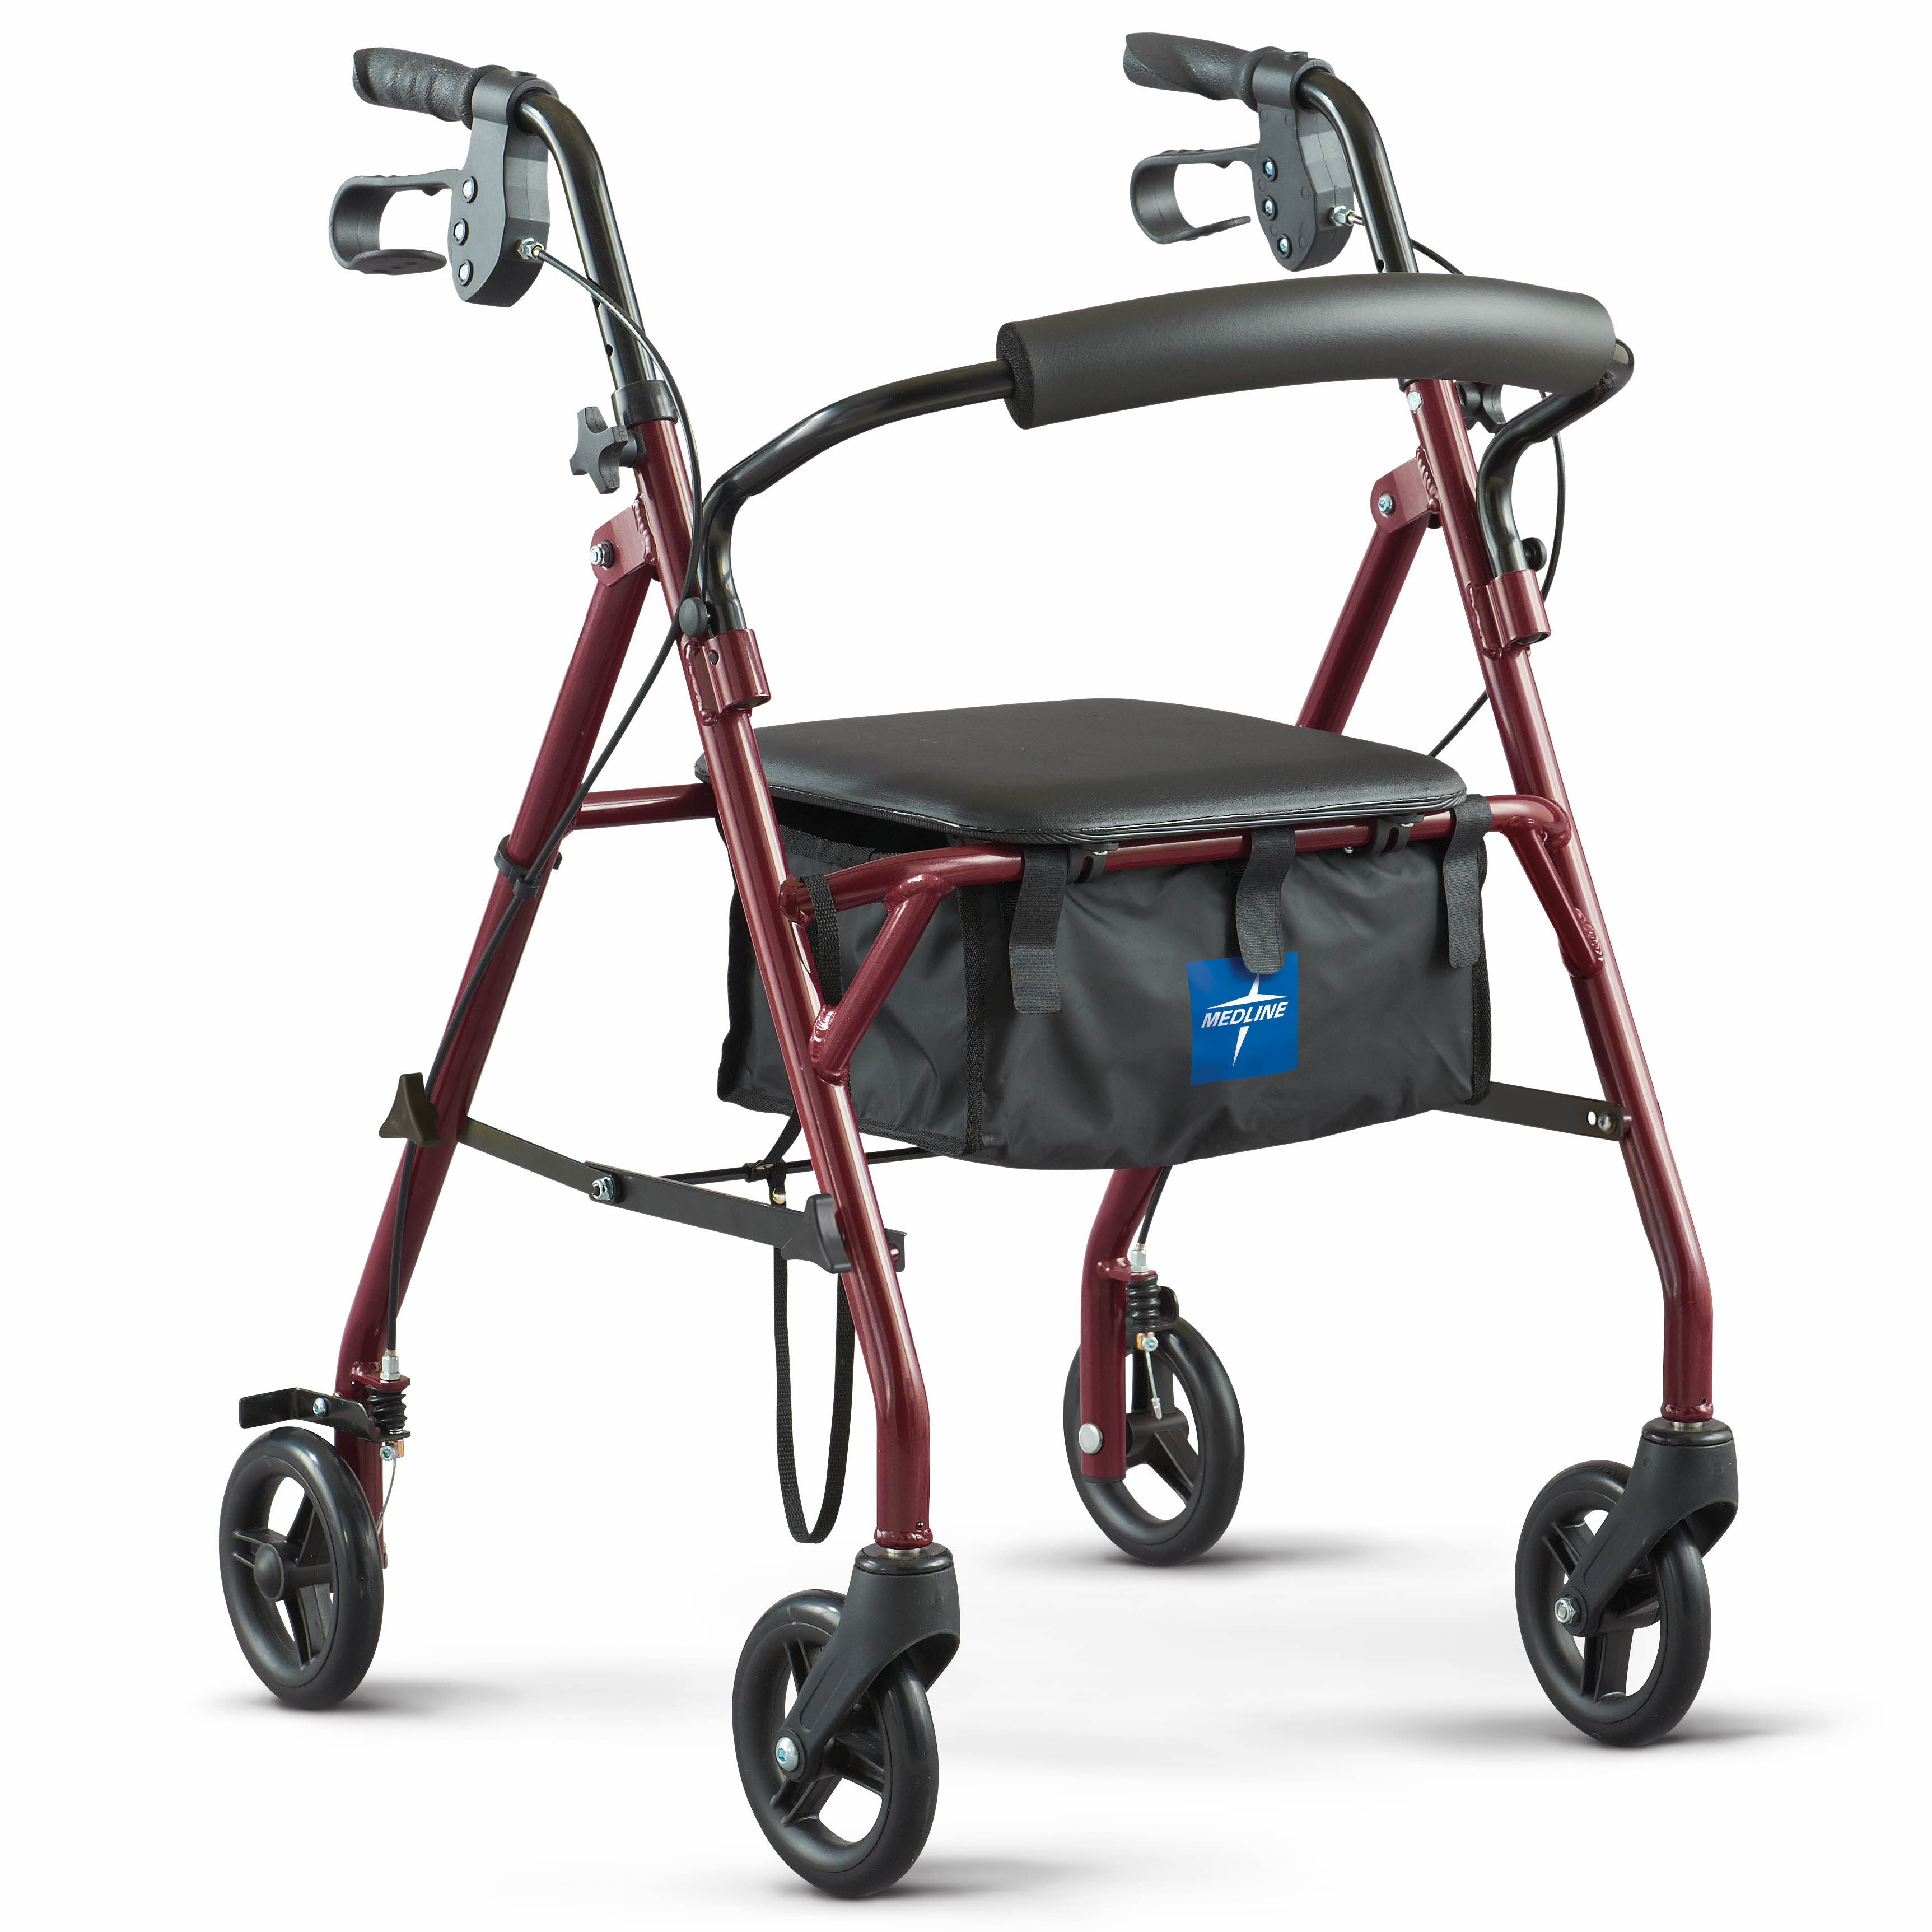 Medline Steel Rollator Walker, Burgundy, 350 lbs Capacity